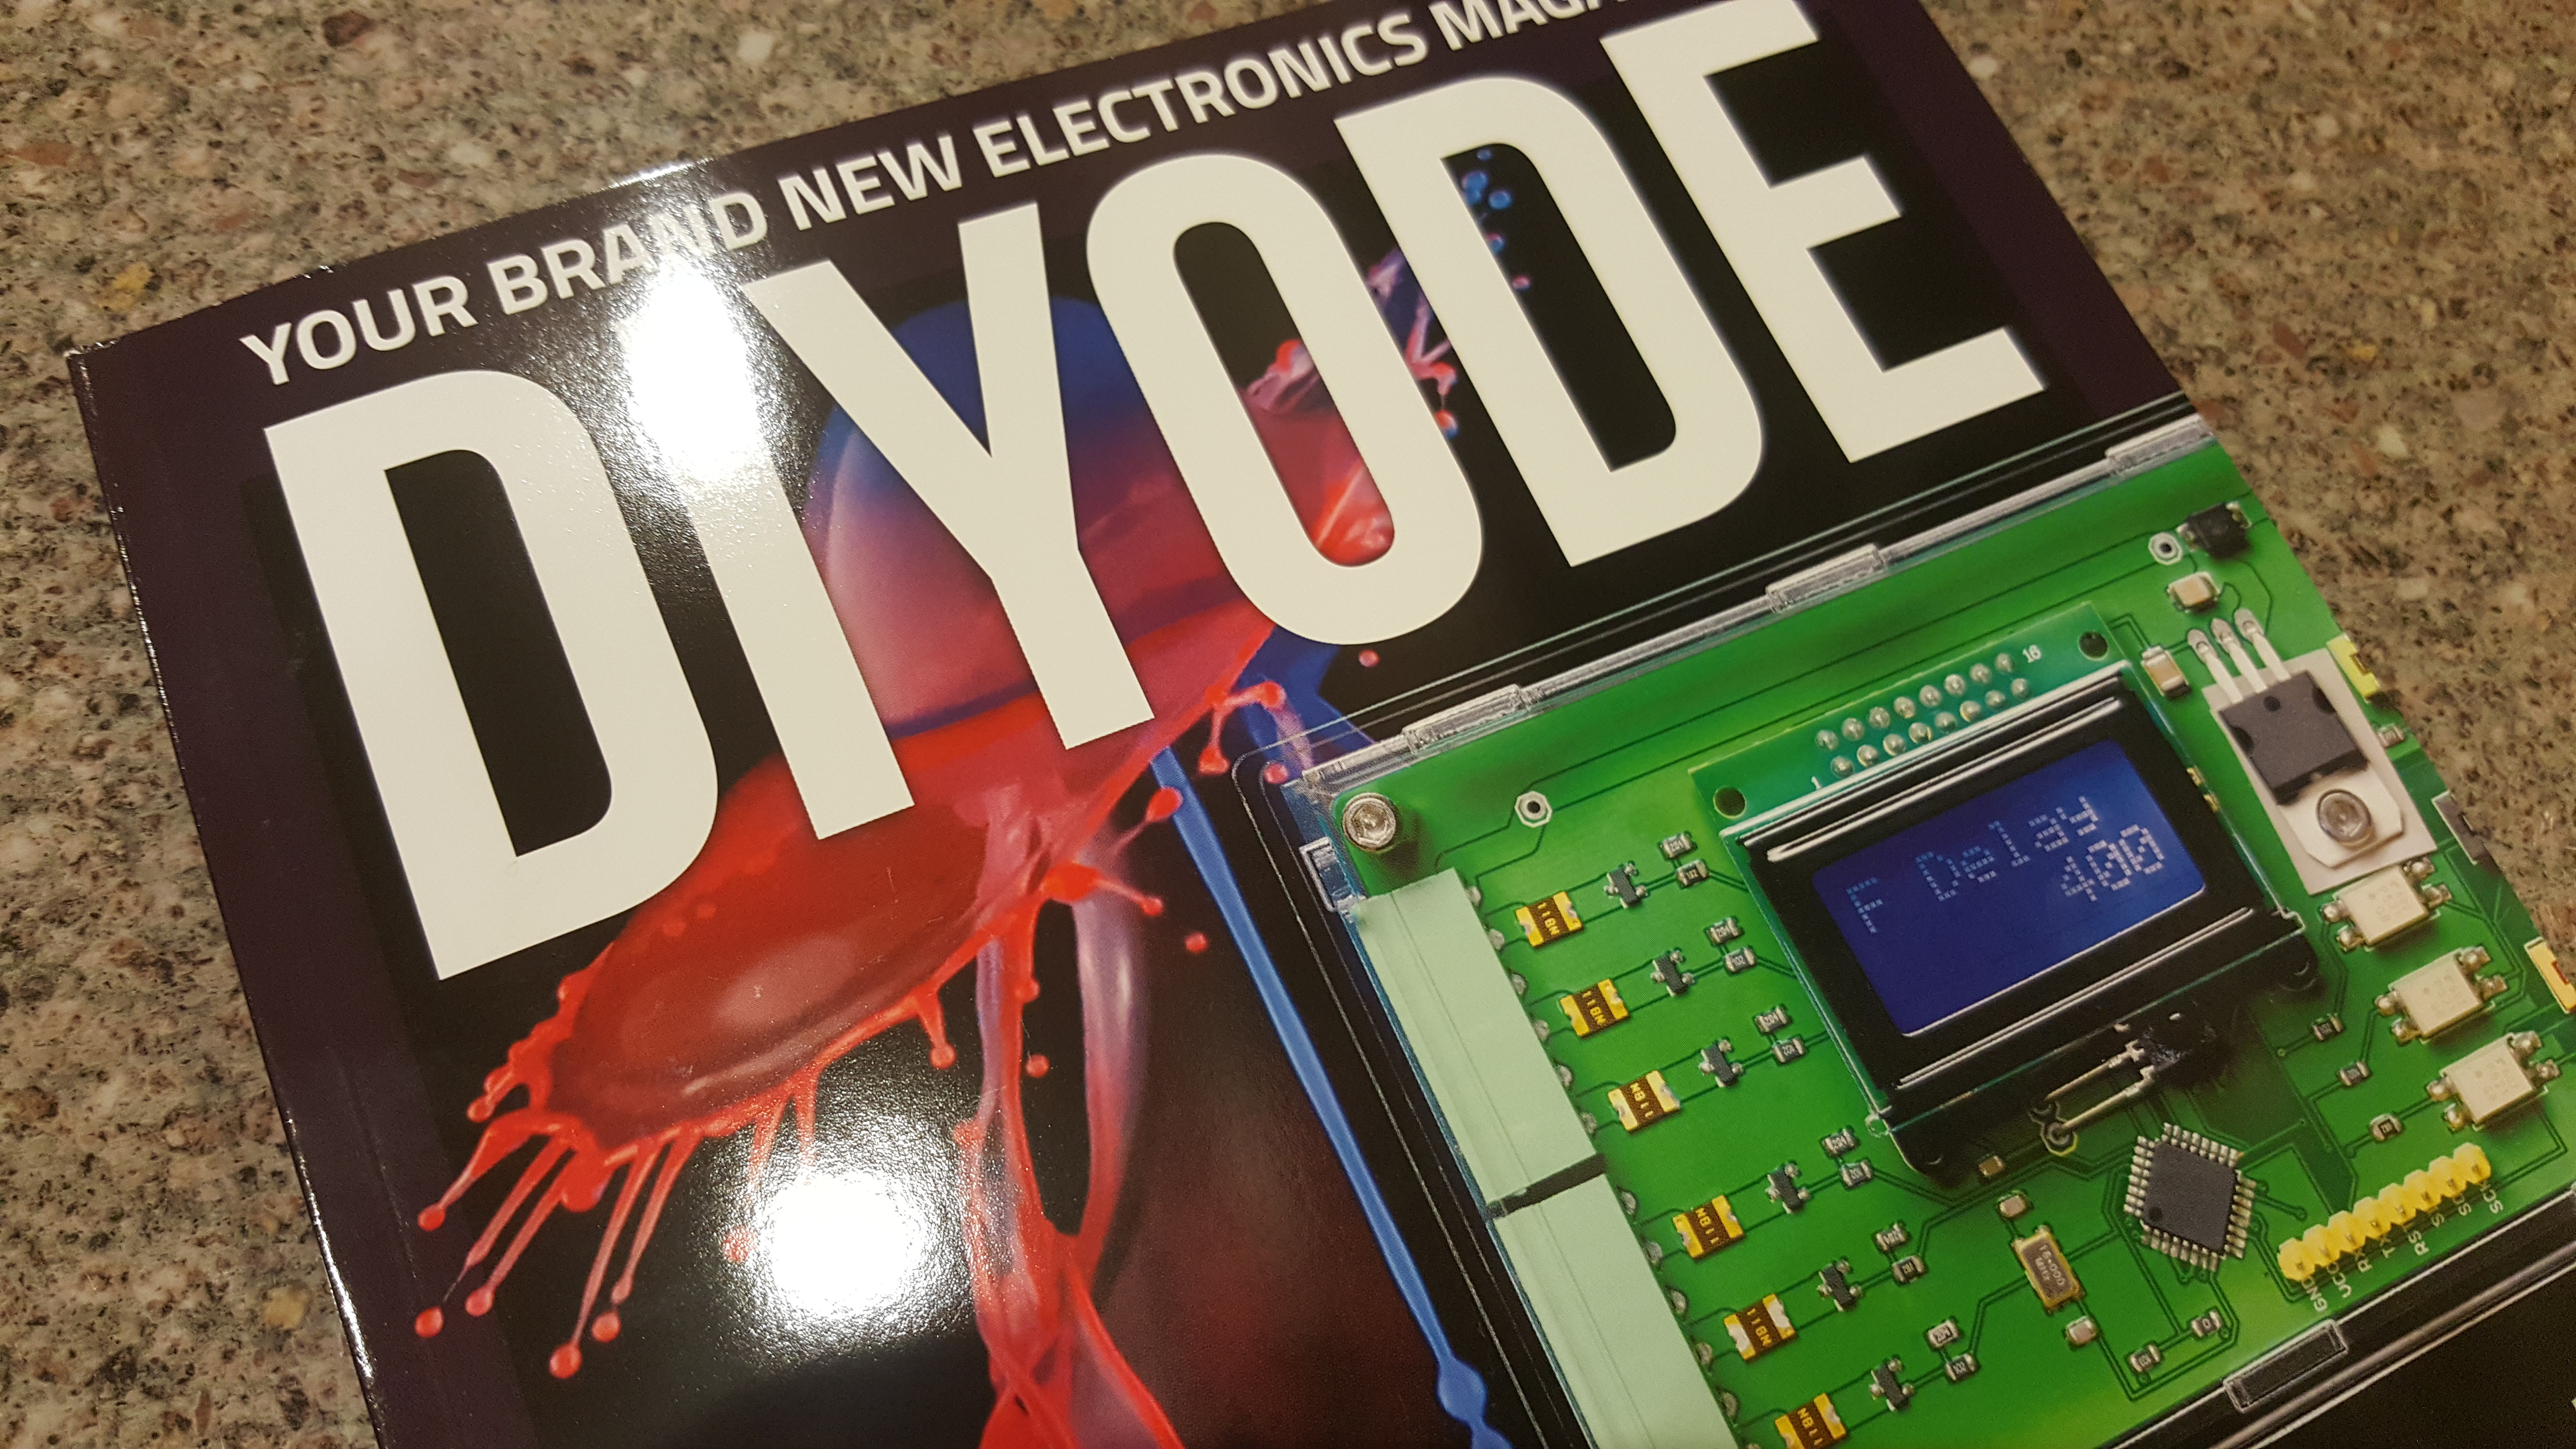 homebrew vk3hn page 3diyode, a new australian diy electronics magazine has just launched i picked up my first edition from the jaycar counter it\u0027s thick, glossy and oozes high